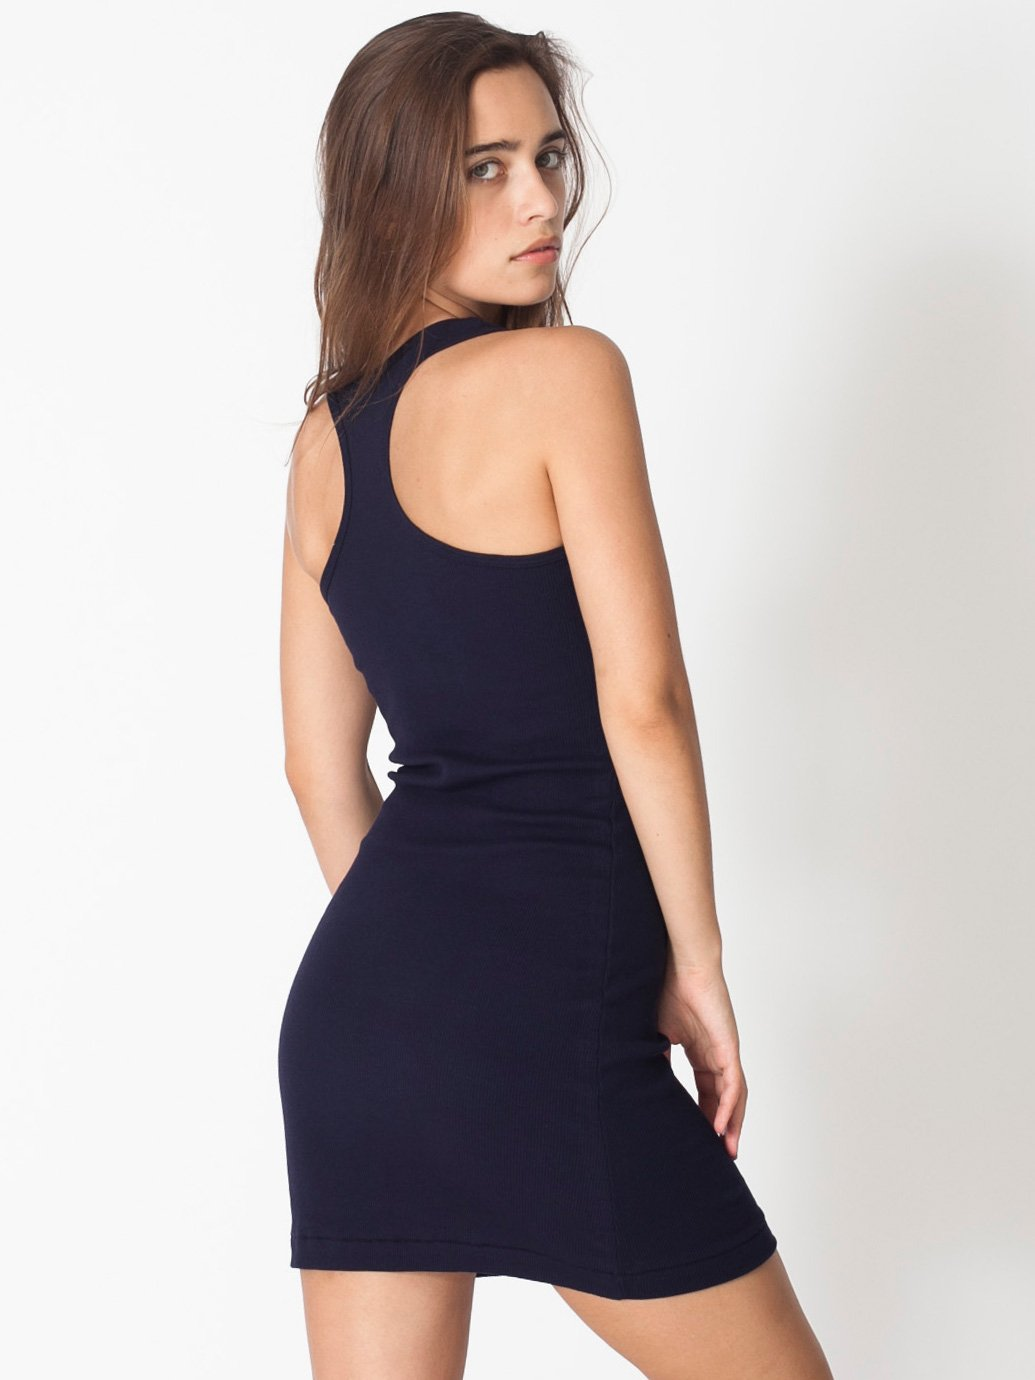 American Apparel Rib Racerback Dress Evan Webster Ink